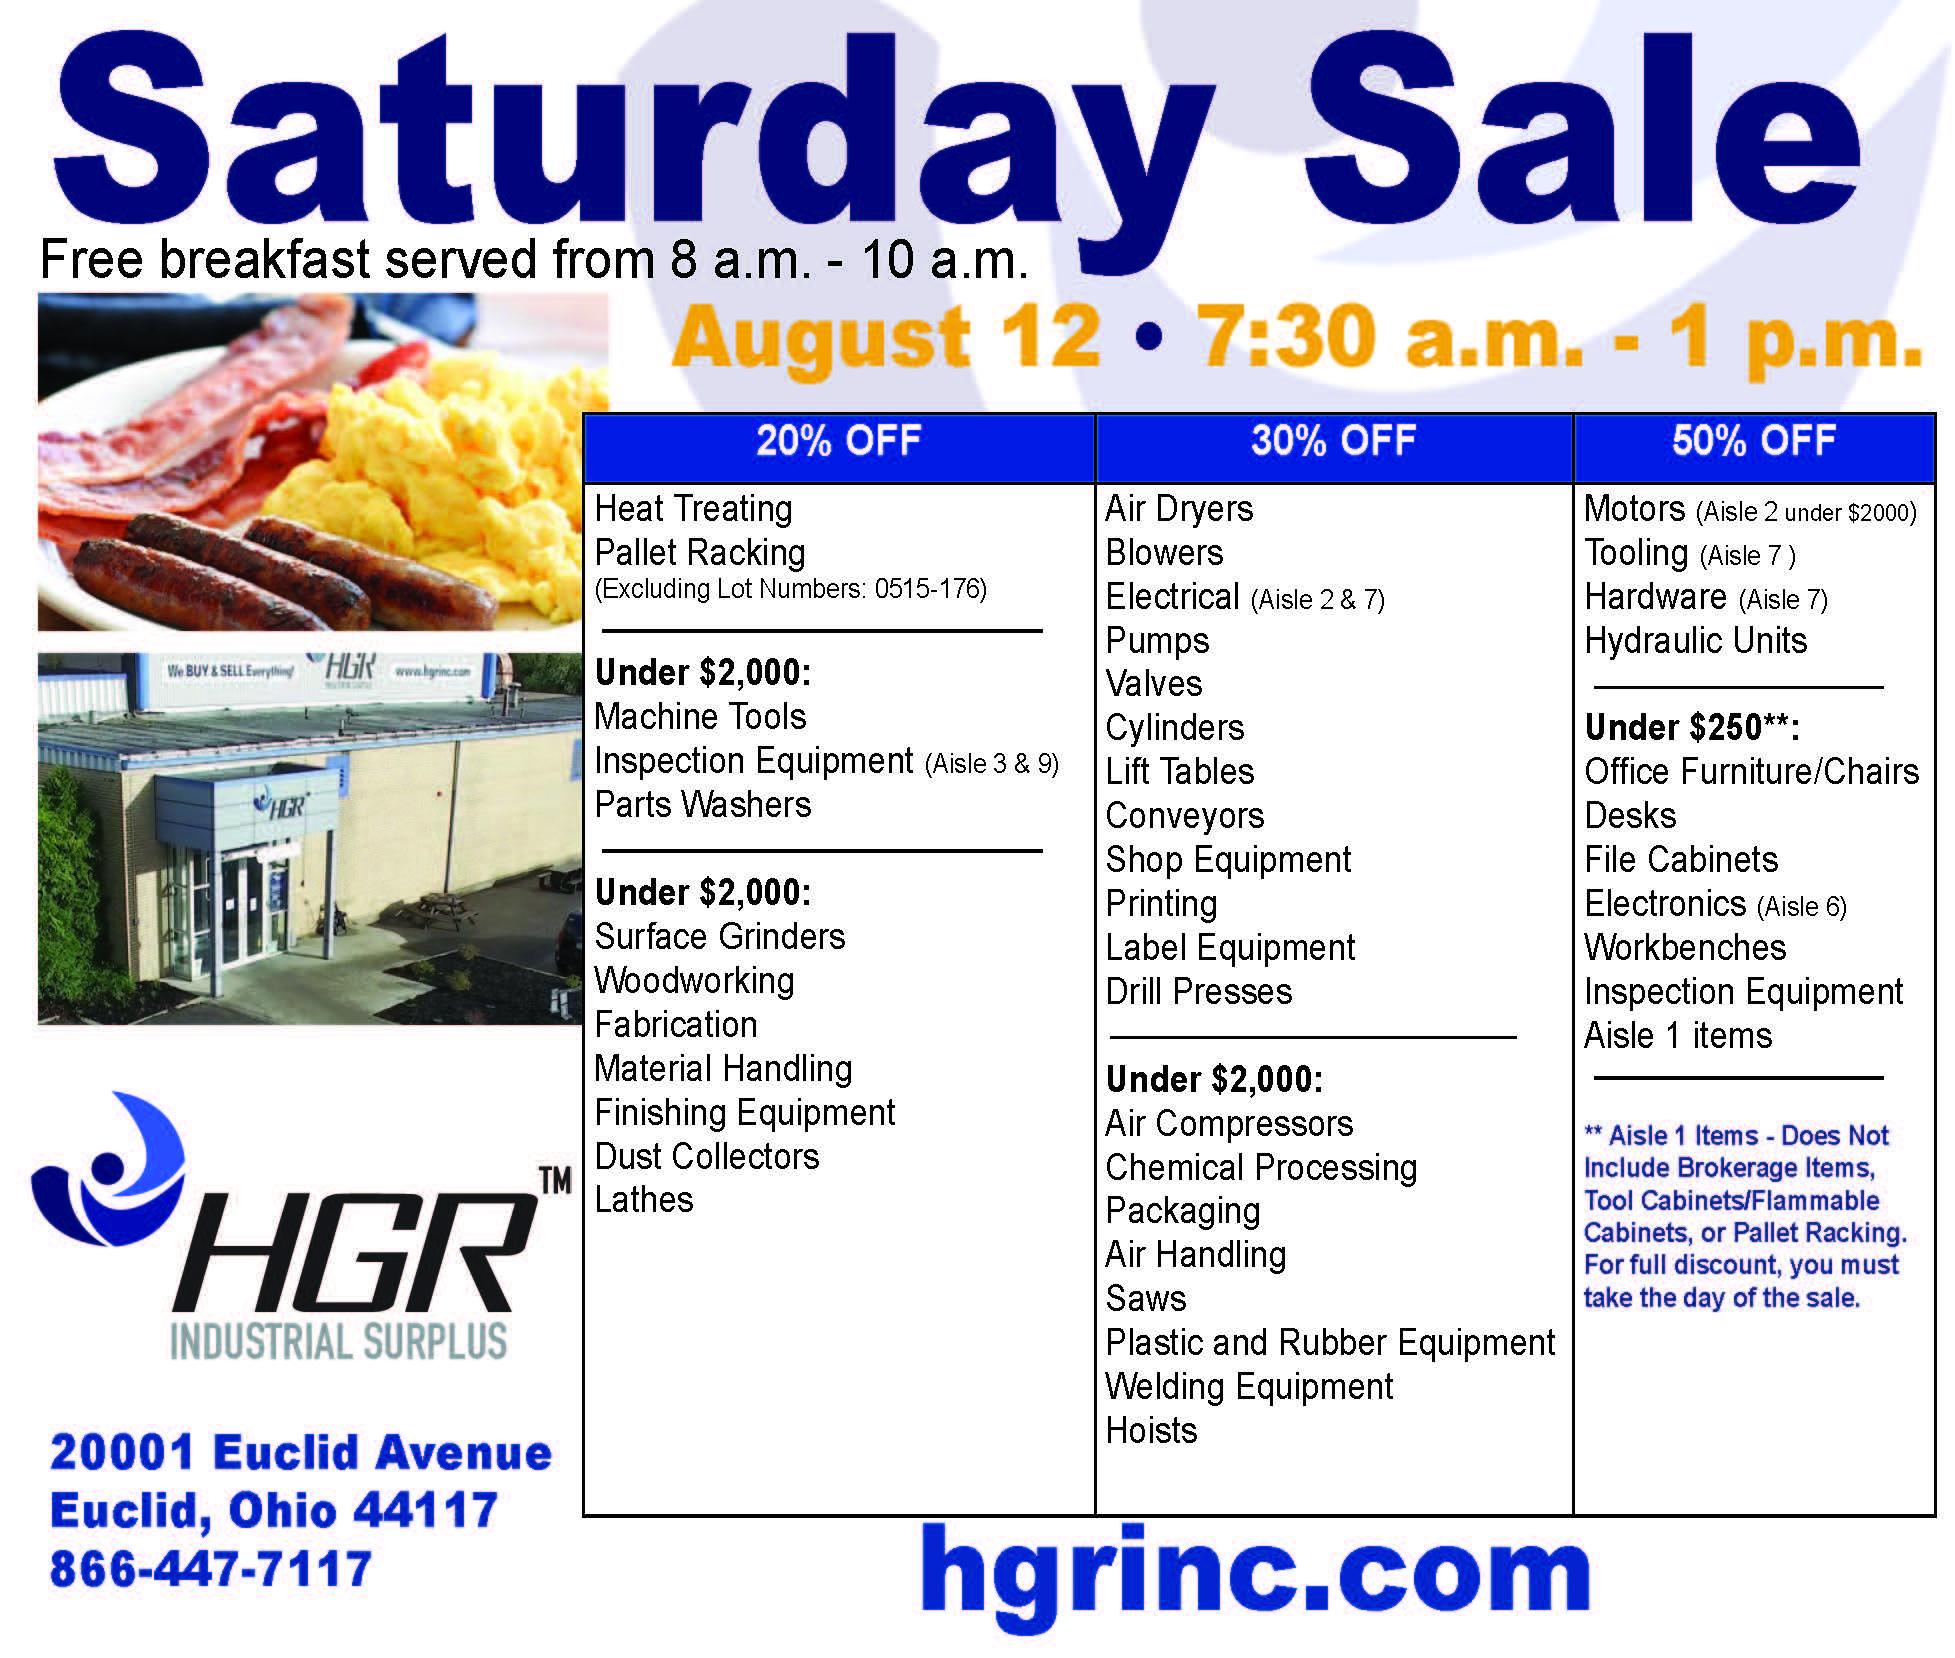 HGR August 2017 Saturday-sale flyer